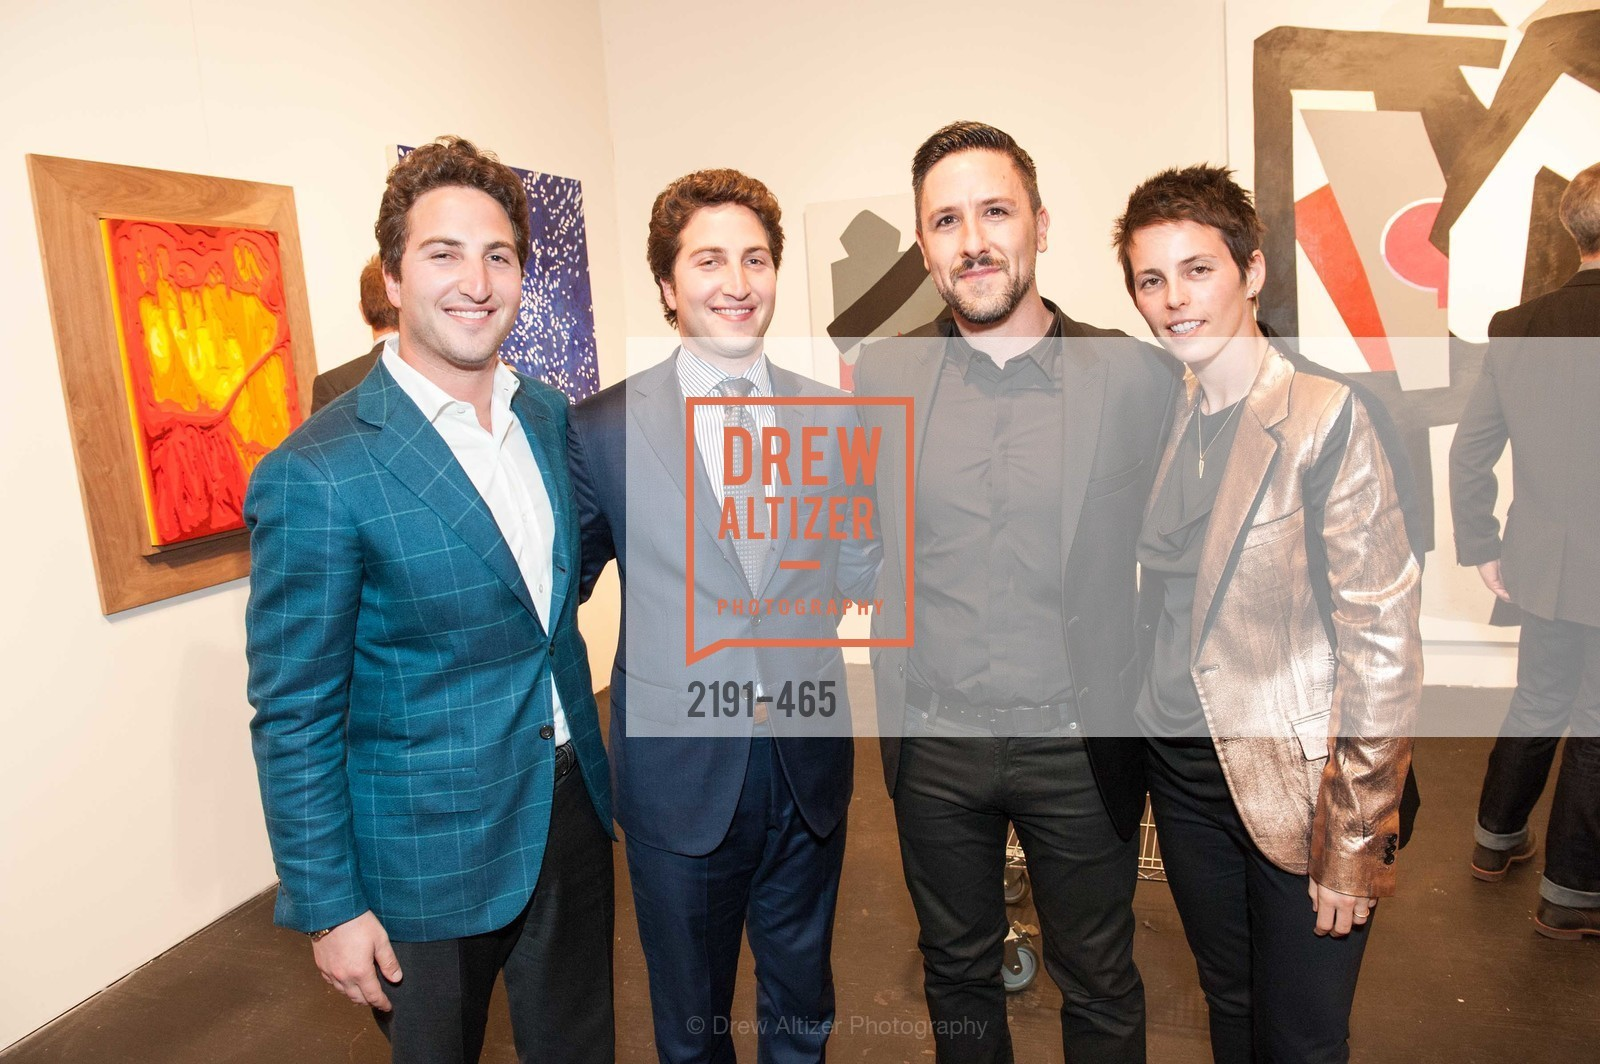 Matthew Goldman, Jason Goldman, Jessica Silverman, FOG Design + Art Preview Gala, US. US, January 16th, 2014,Drew Altizer, Drew Altizer Photography, full-service agency, private events, San Francisco photographer, photographer california